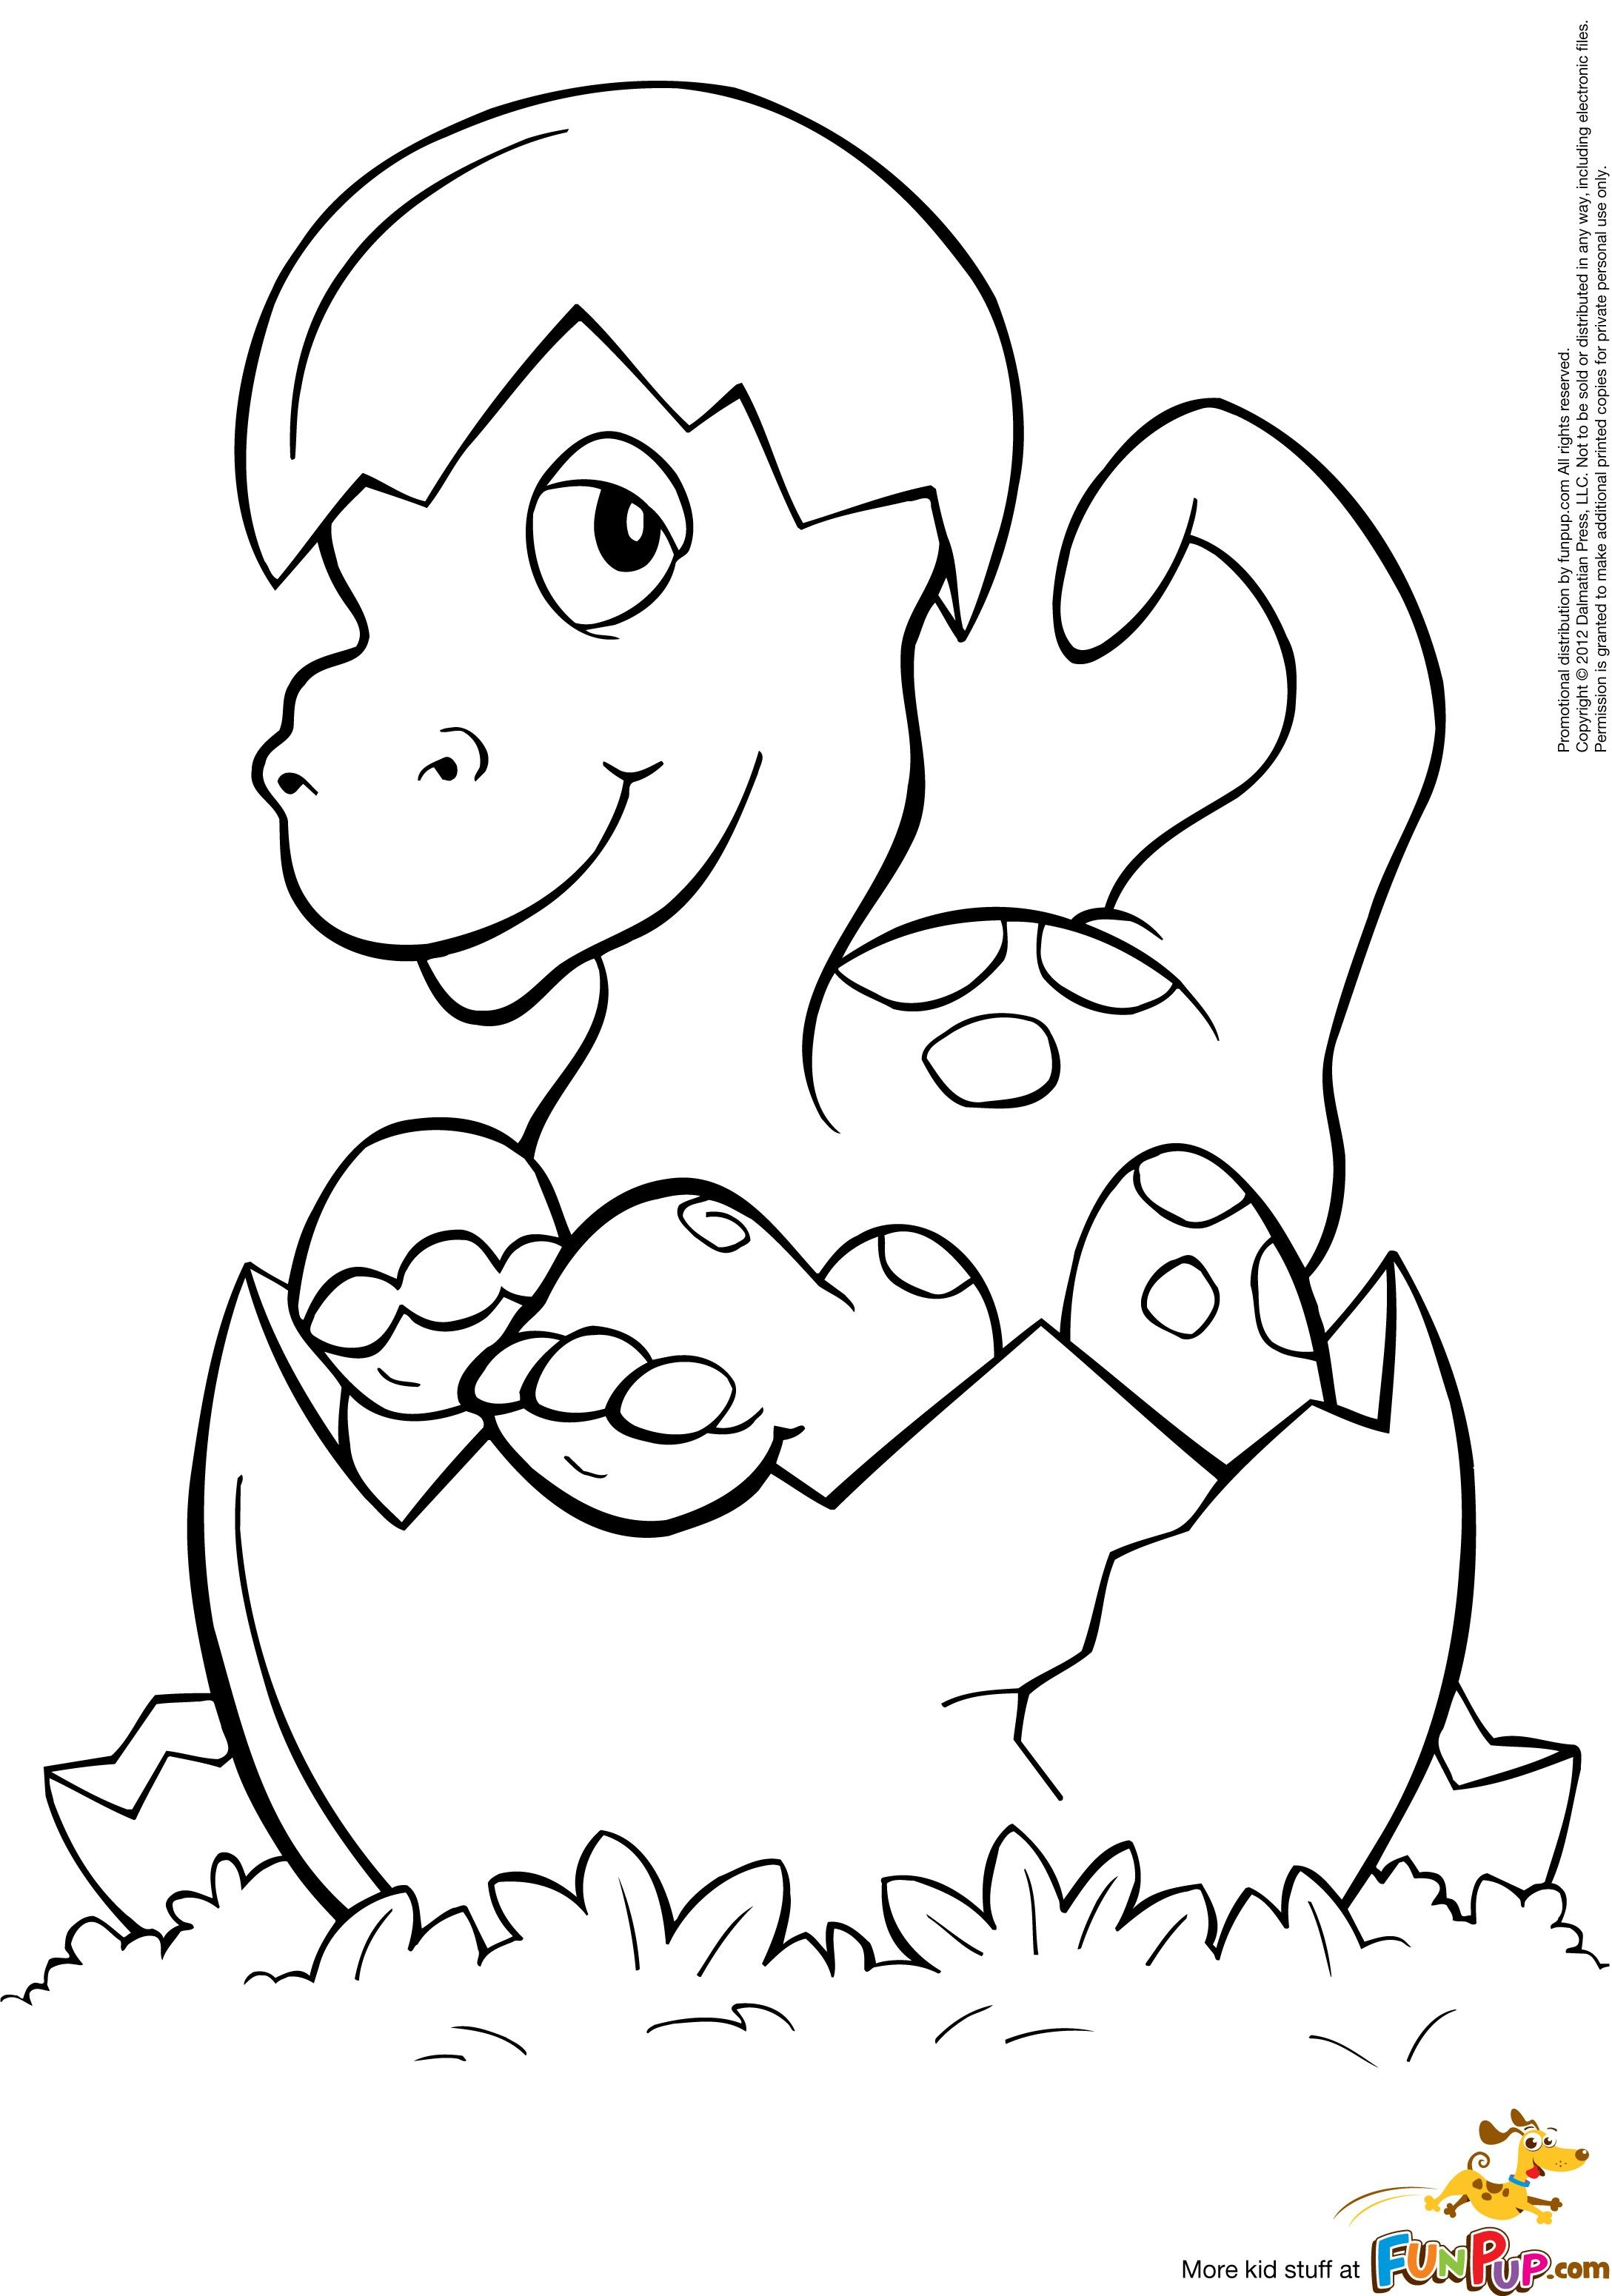 Coloring pages dinosaurs and dragons - Hatched Baby Dino Coloring Page